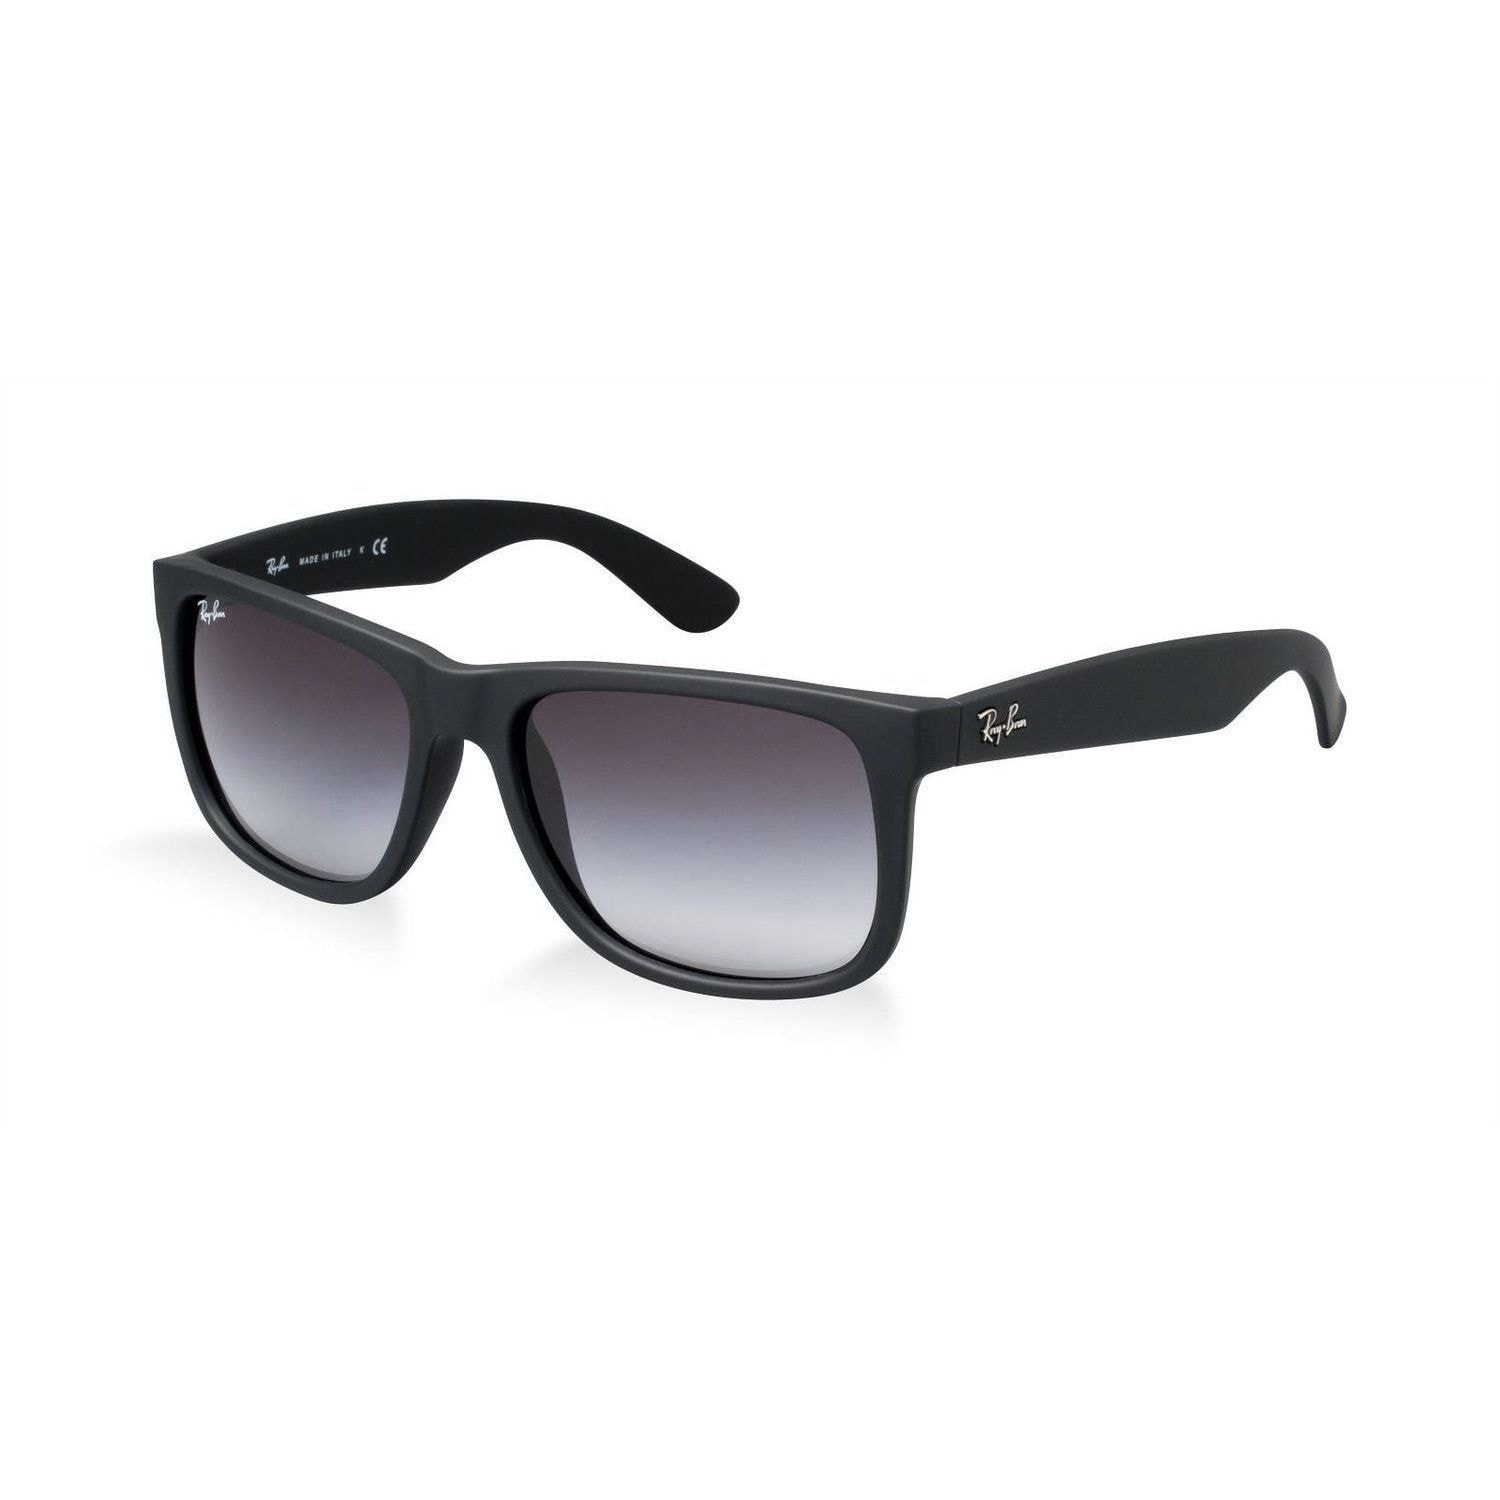 d98294c4fb Shop Ray-Ban Justin RB4165 601 8G Black Frame Grey Gradient 51mm Lens  Sunglasses - Free Shipping Today - Overstock.com - 14338815